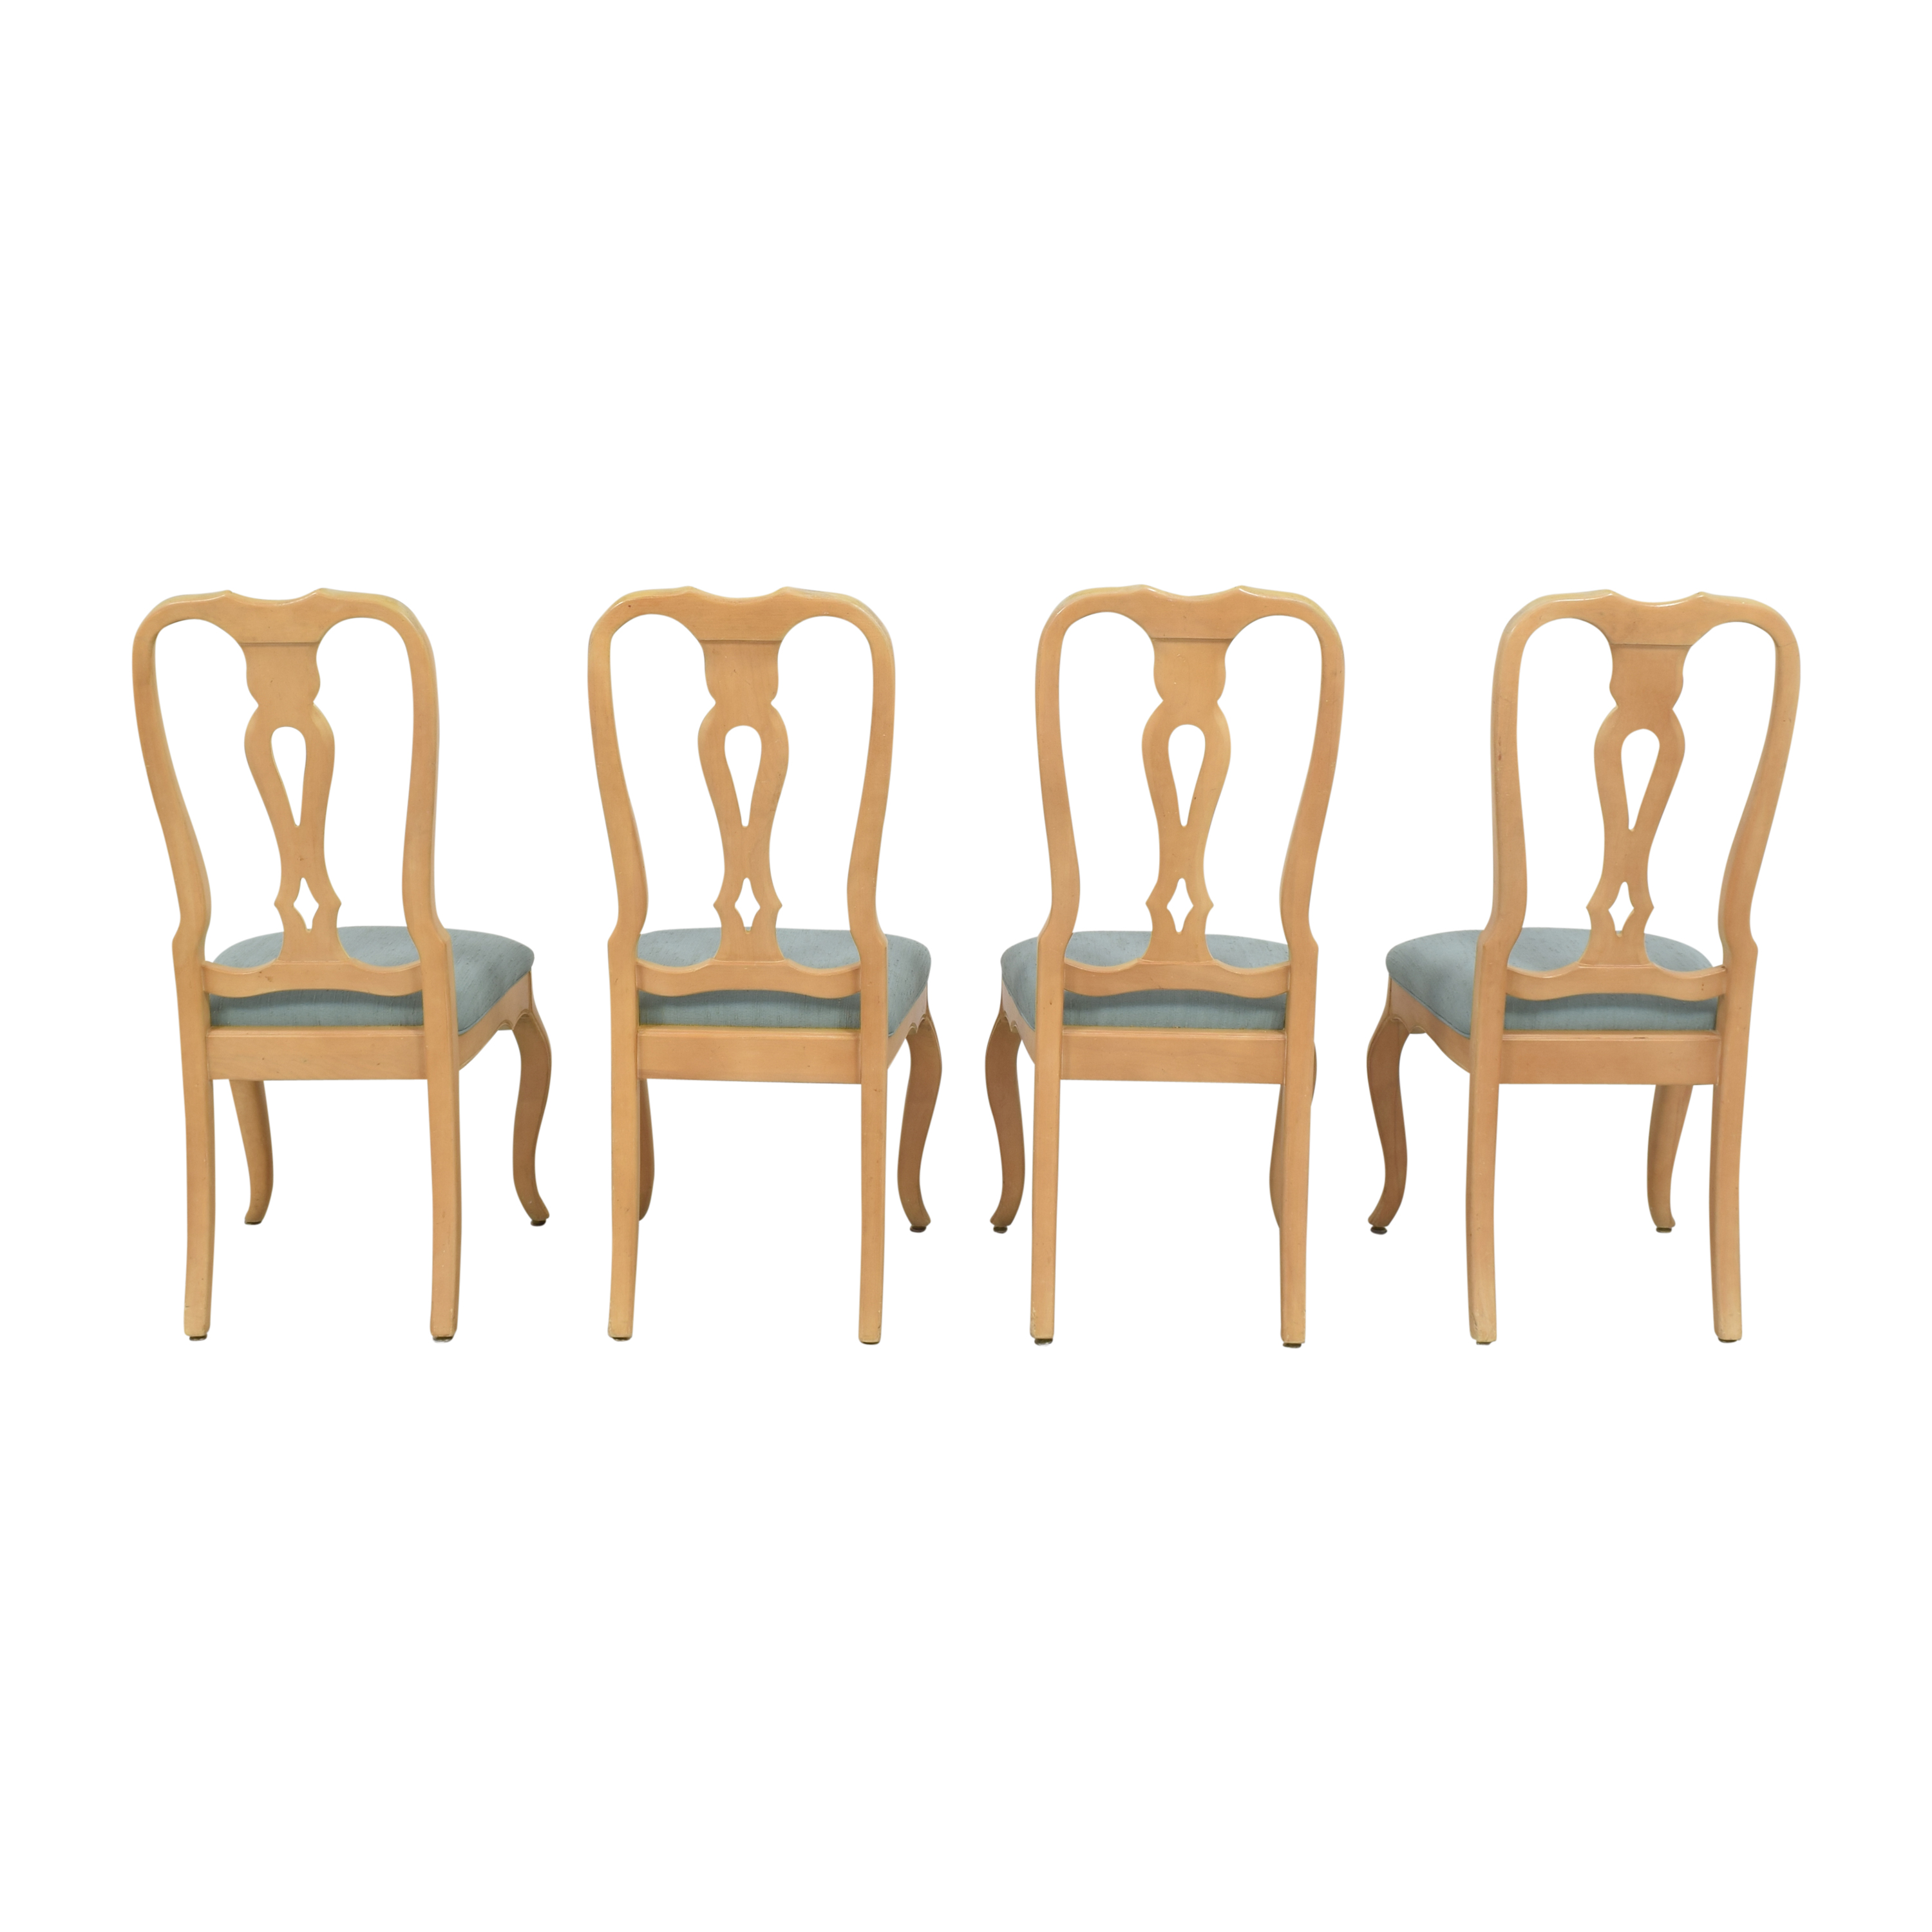 Ethan Allen Ethan Allen Upholstered Dining Chairs for sale